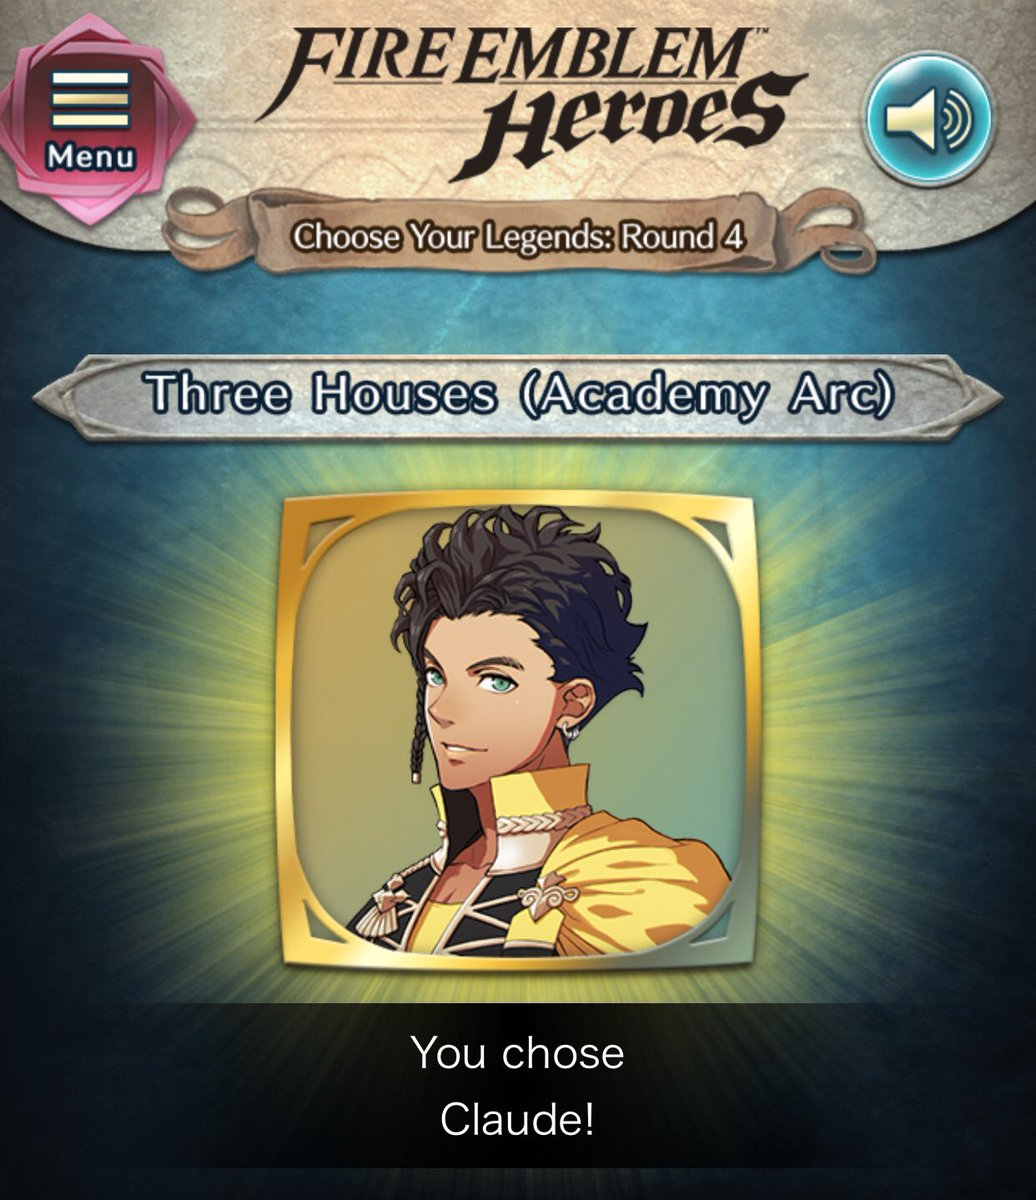 Choose your Legends 4 is still going voting. But we must vote Claude for the alt costume!! Do it for @JoeZieja #FearTheDeer #FEHeroes